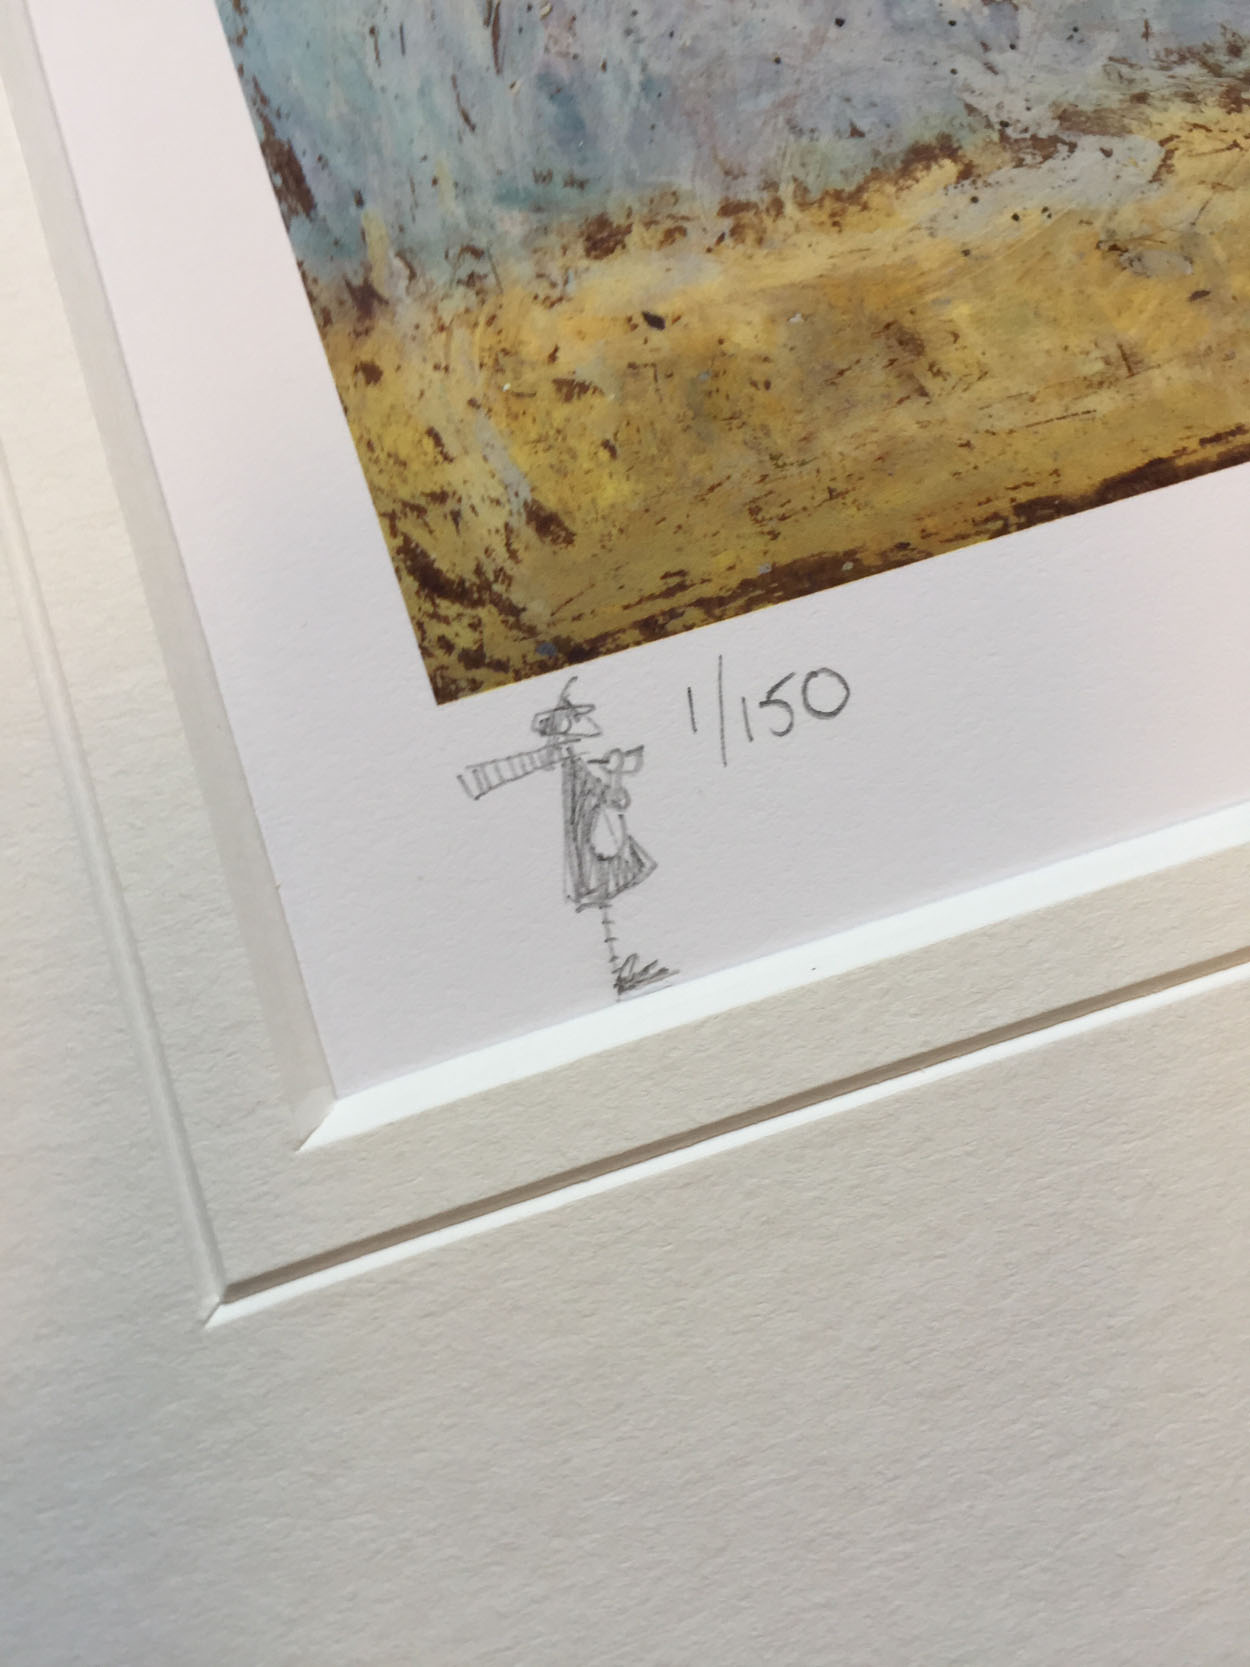 Nice View That (Remarque) (1/150) by Sam Toft, Rare | Dog | Animals | Figurative | Humour